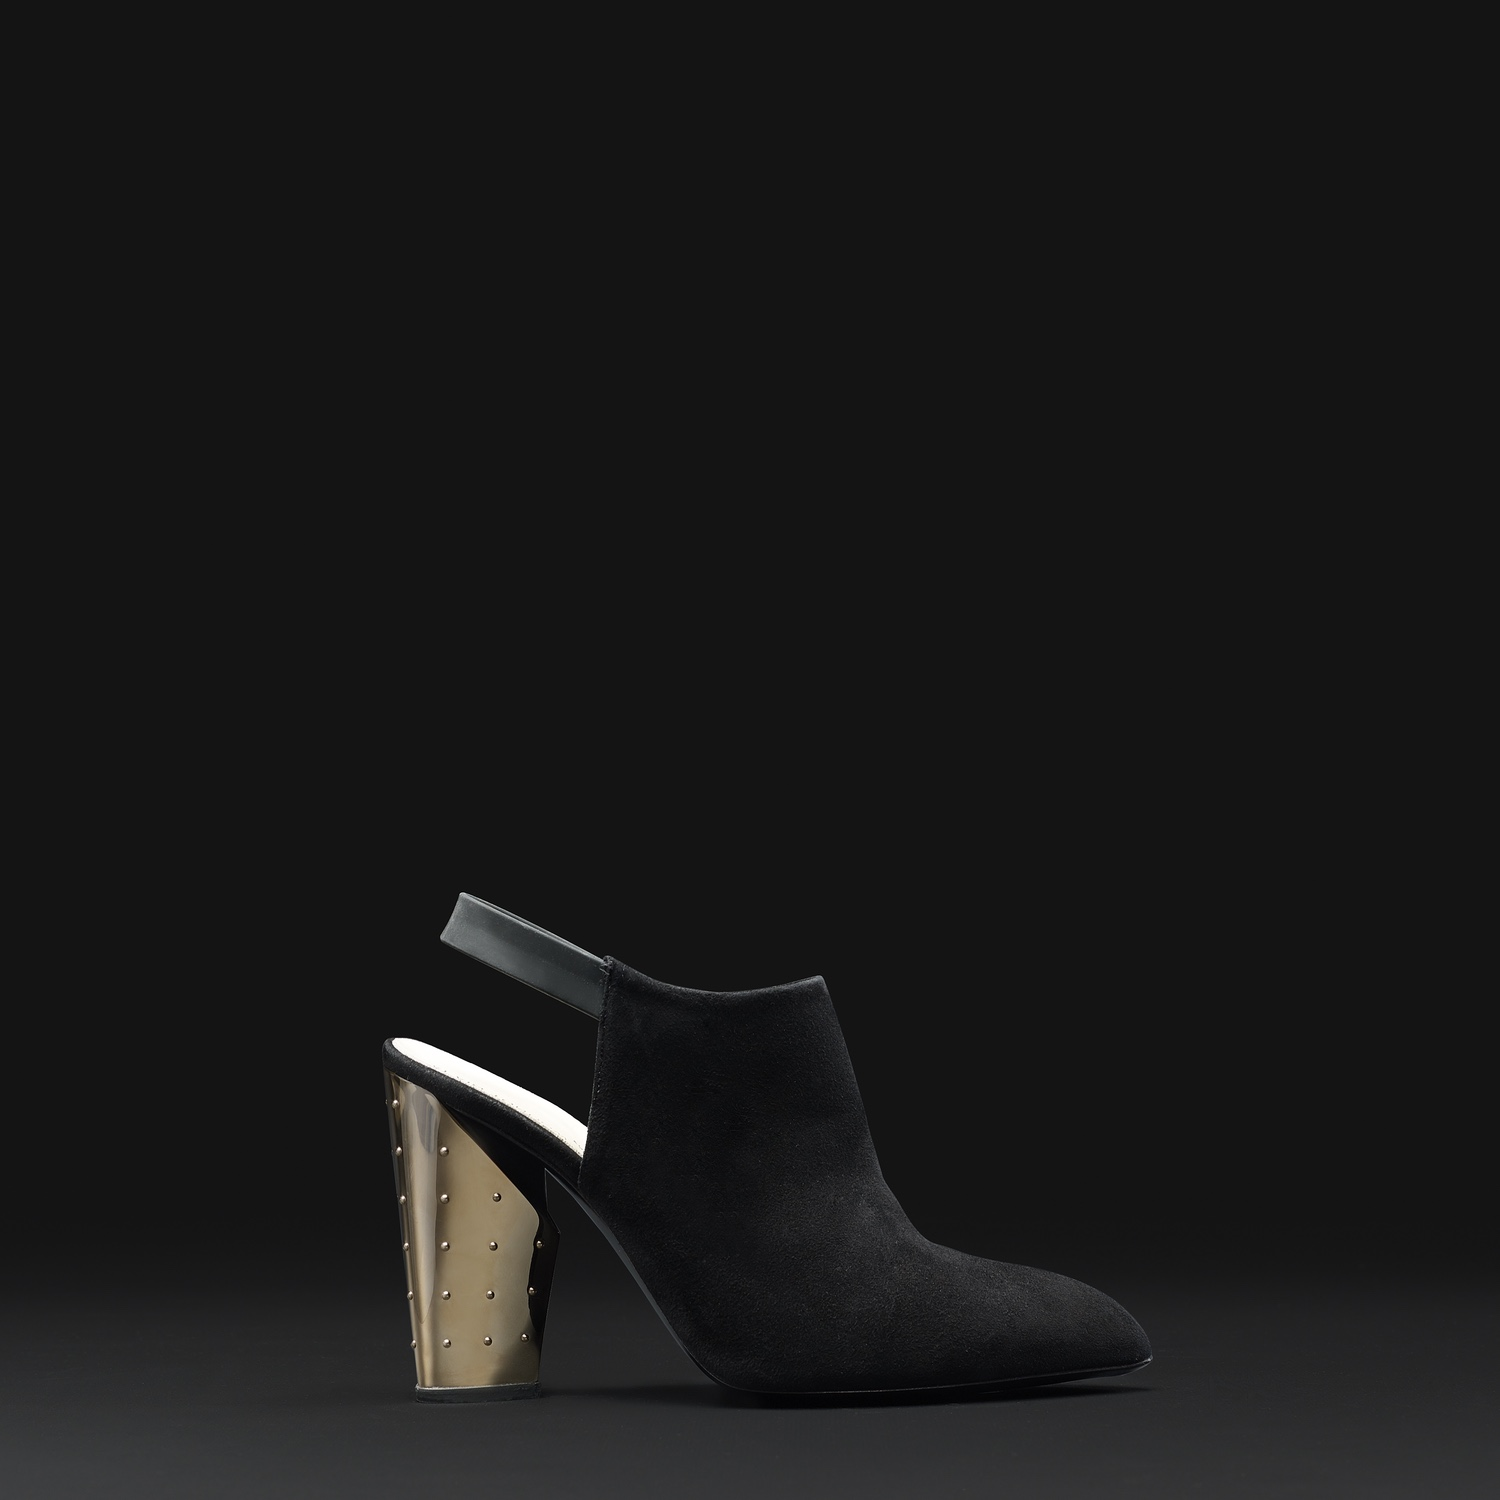 ALAINTONDOWSKI_FALLWINTER2015_SHOES_AT035-B